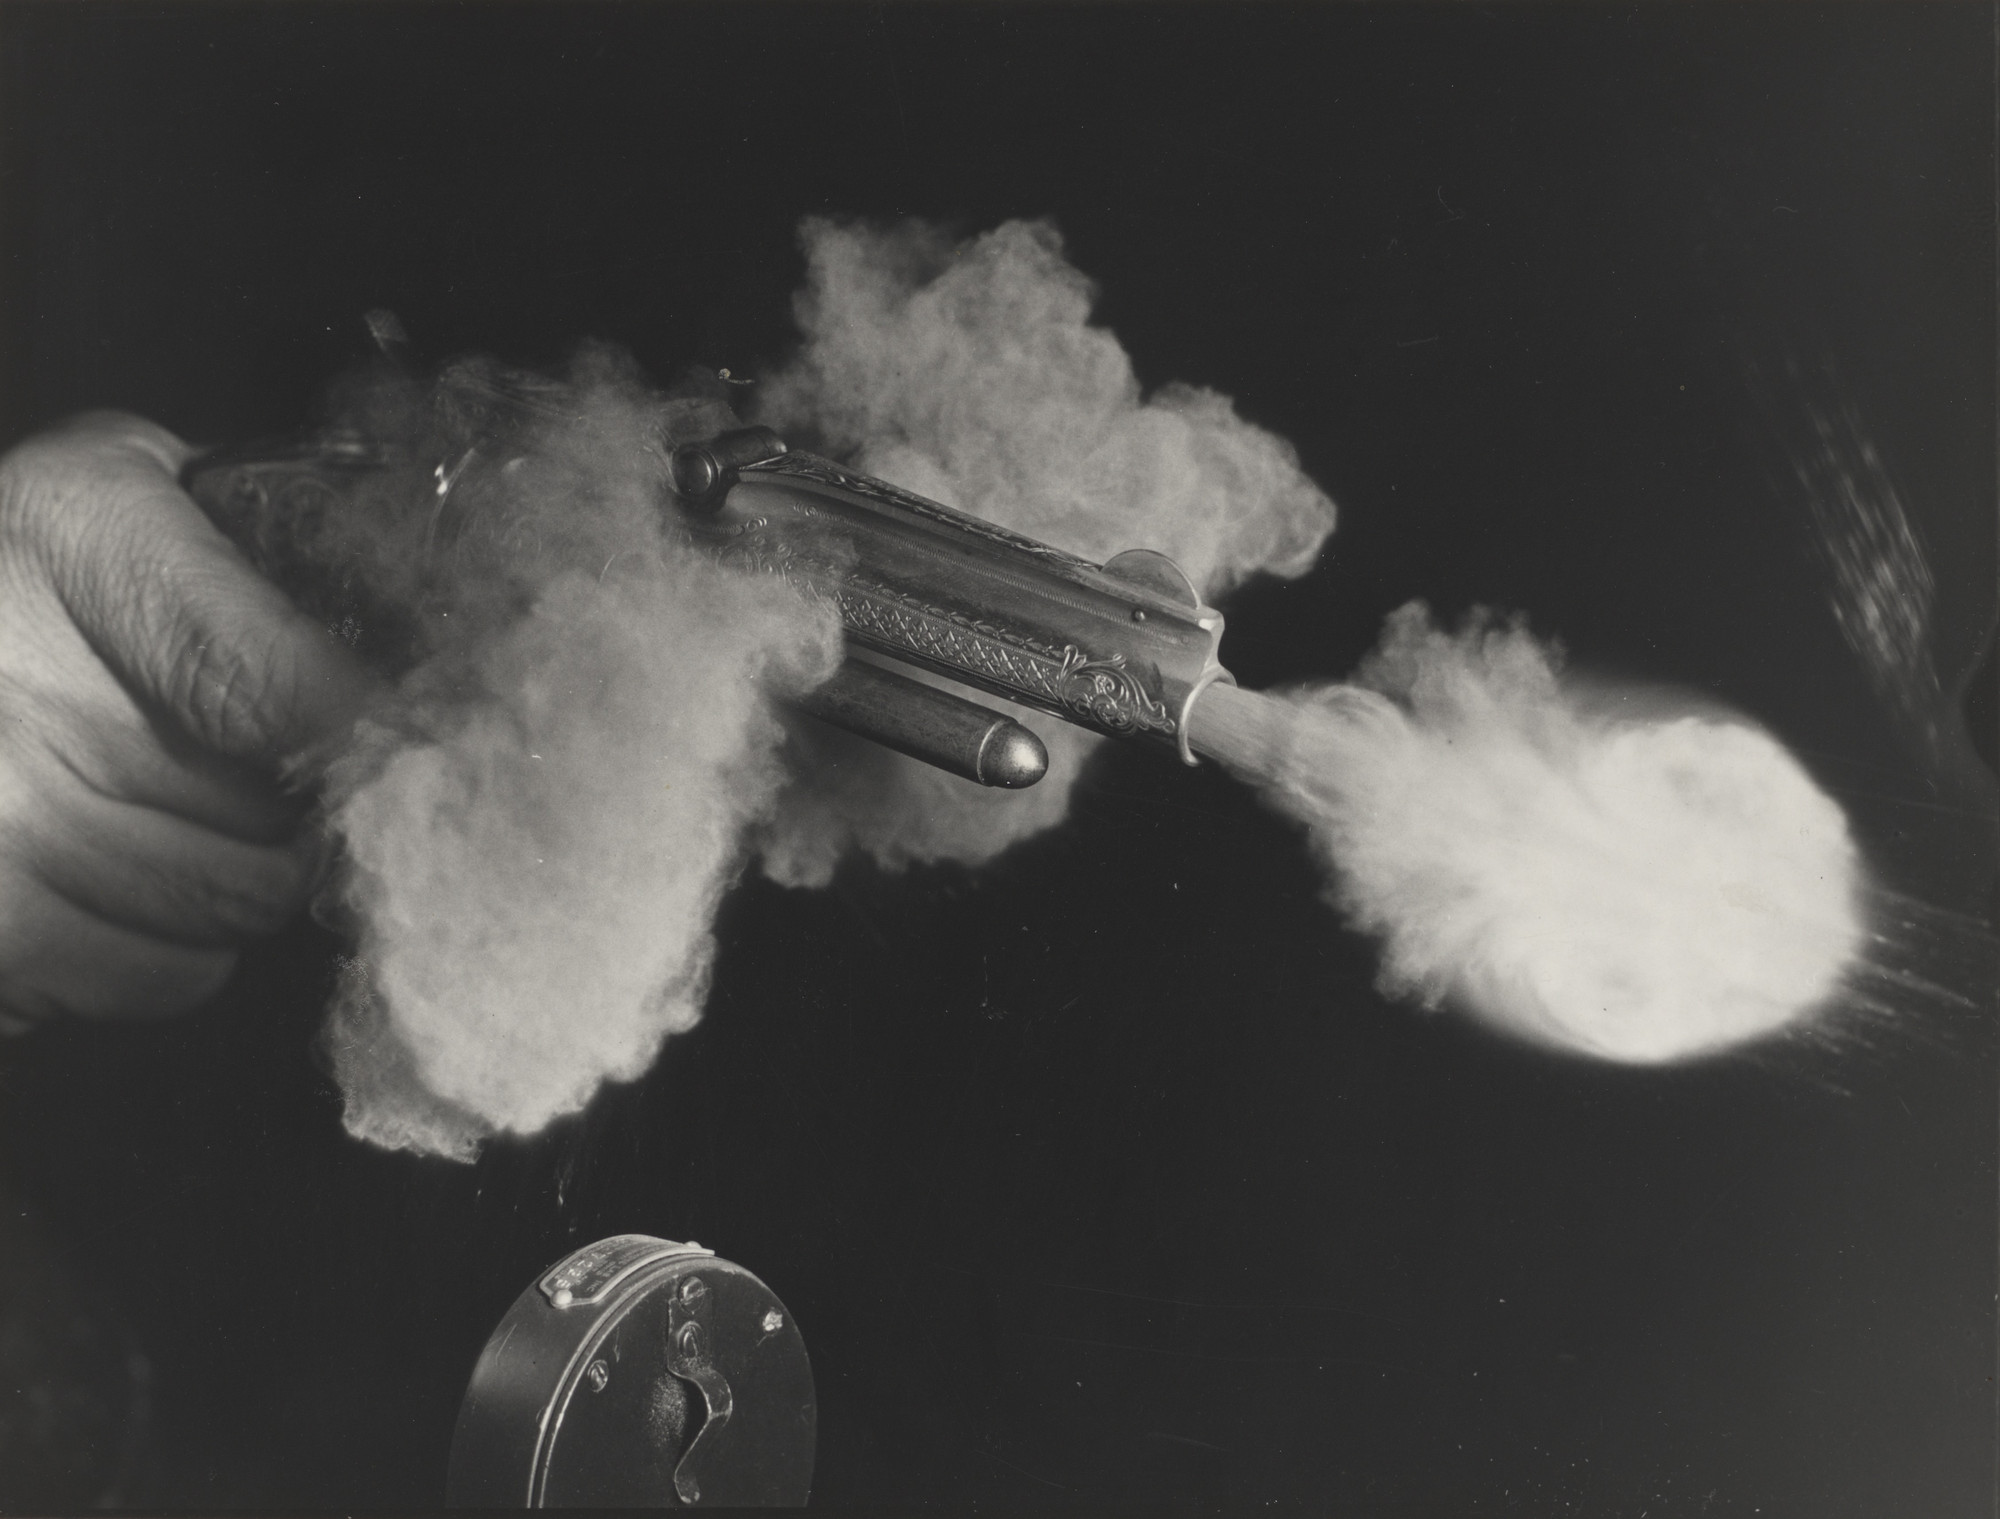 Dr. Harold E. Edgerton. Dangerous Weapon. 1936